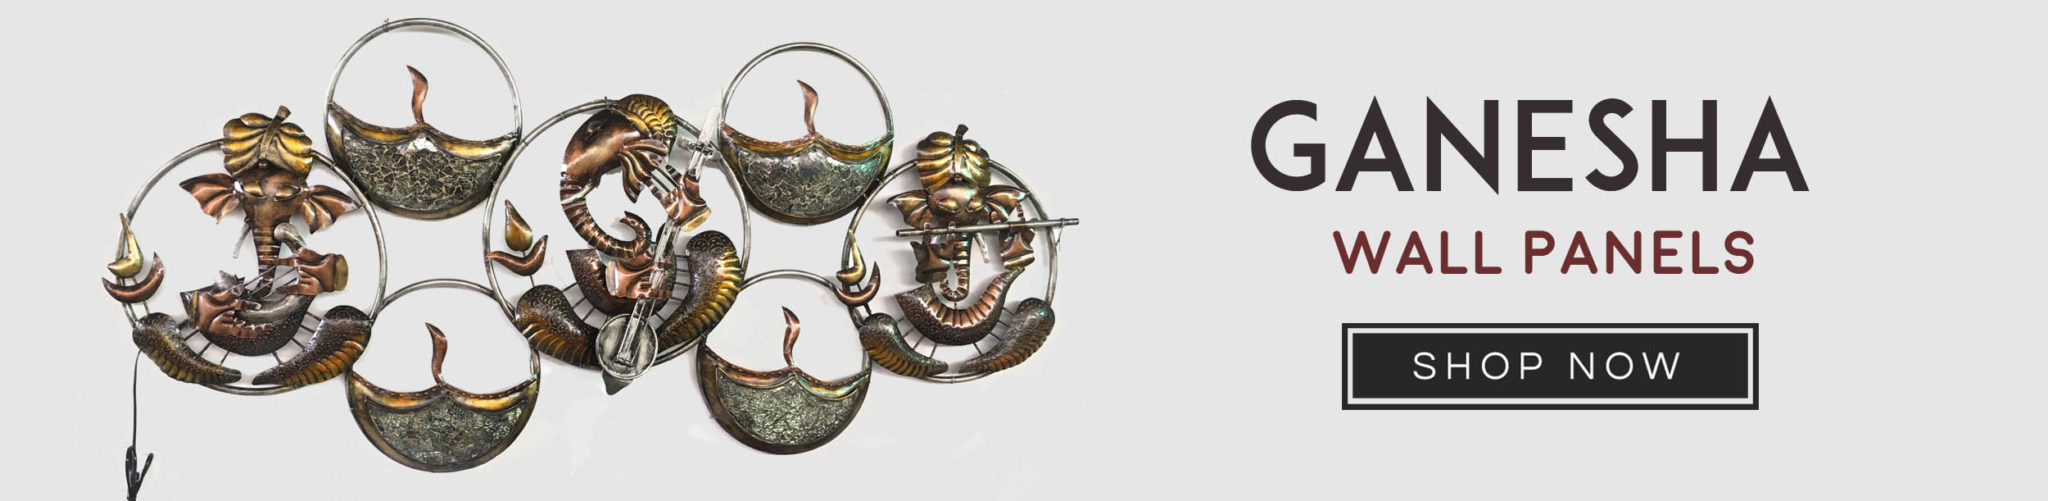 ganesha-metal-wall-art-wall-decor